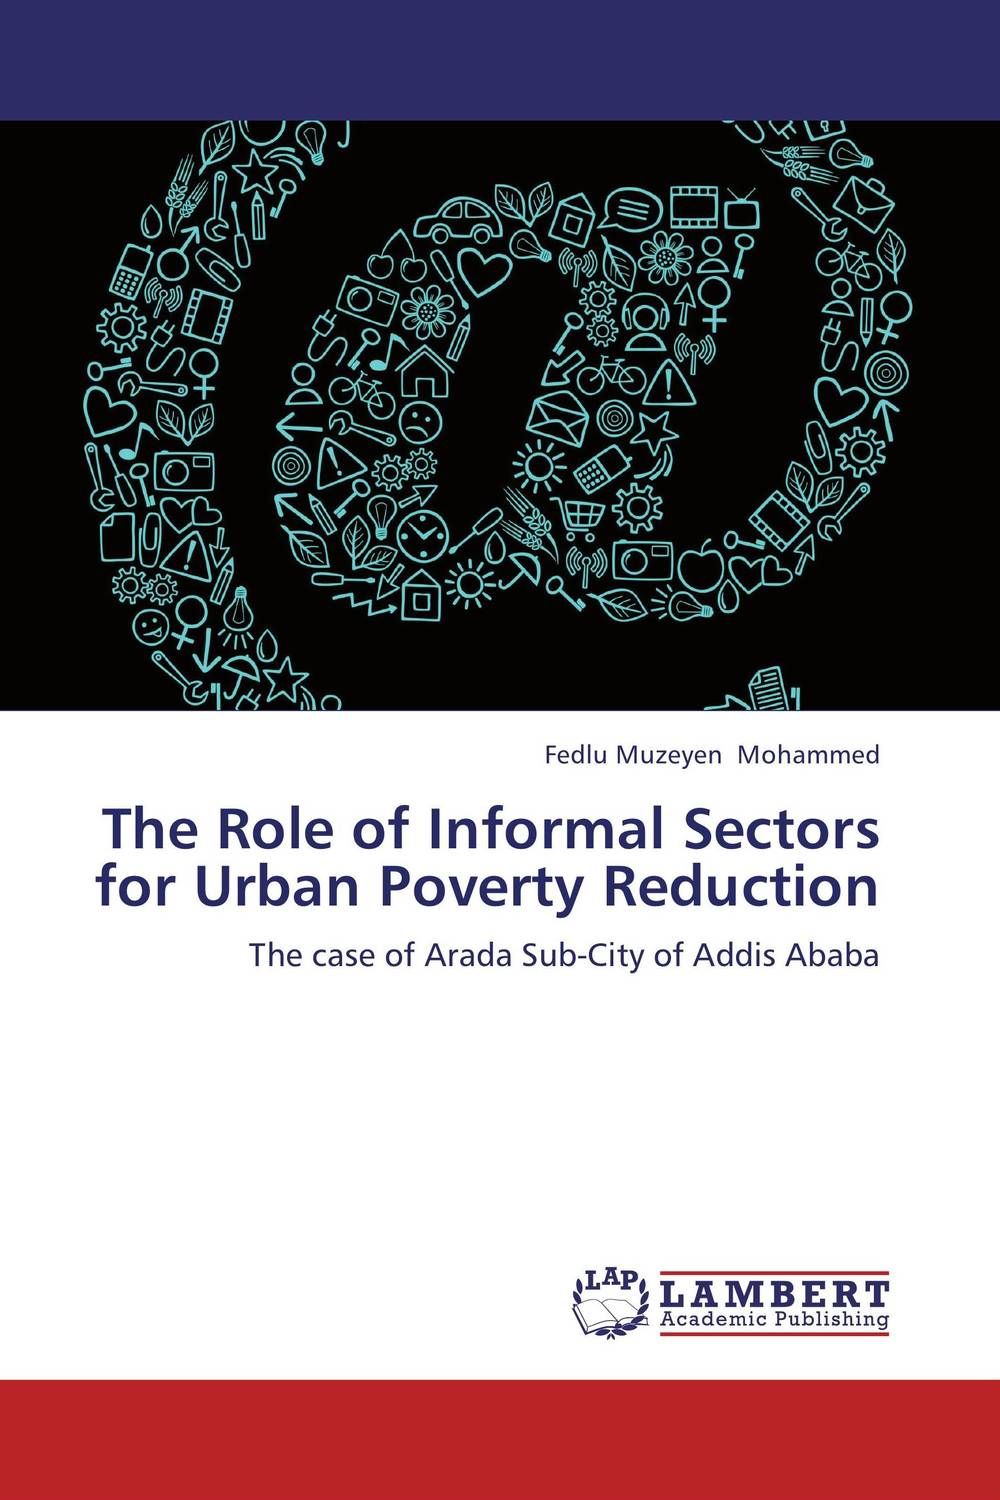 The Role of Informal Sectors for Urban Poverty Reduction the role of informal sectors for urban poverty reduction